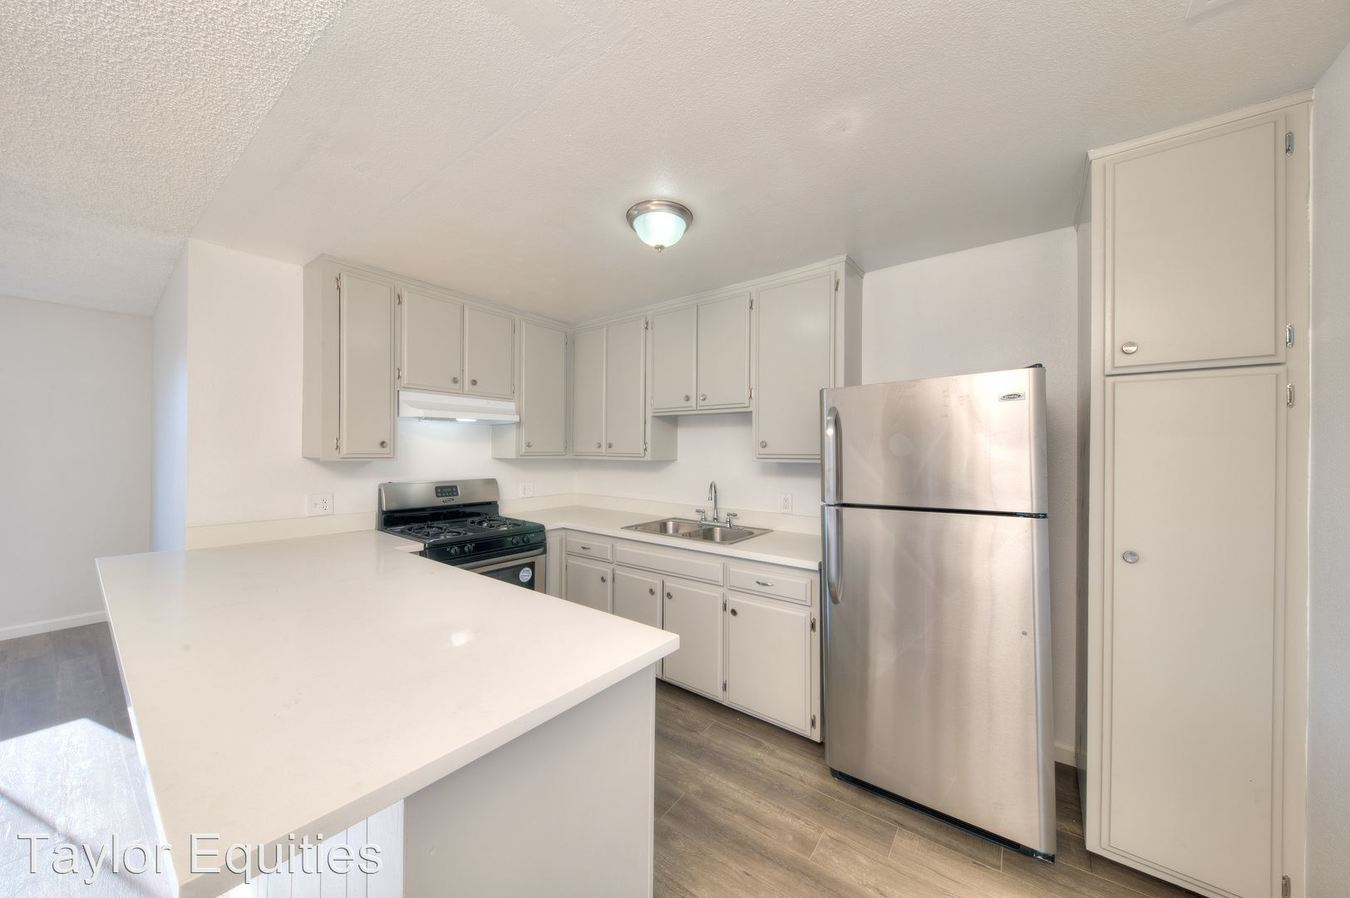 2 Bedrooms 1 Bathroom Apartment for rent at 829 N Bunker Hill in Los Angeles, CA